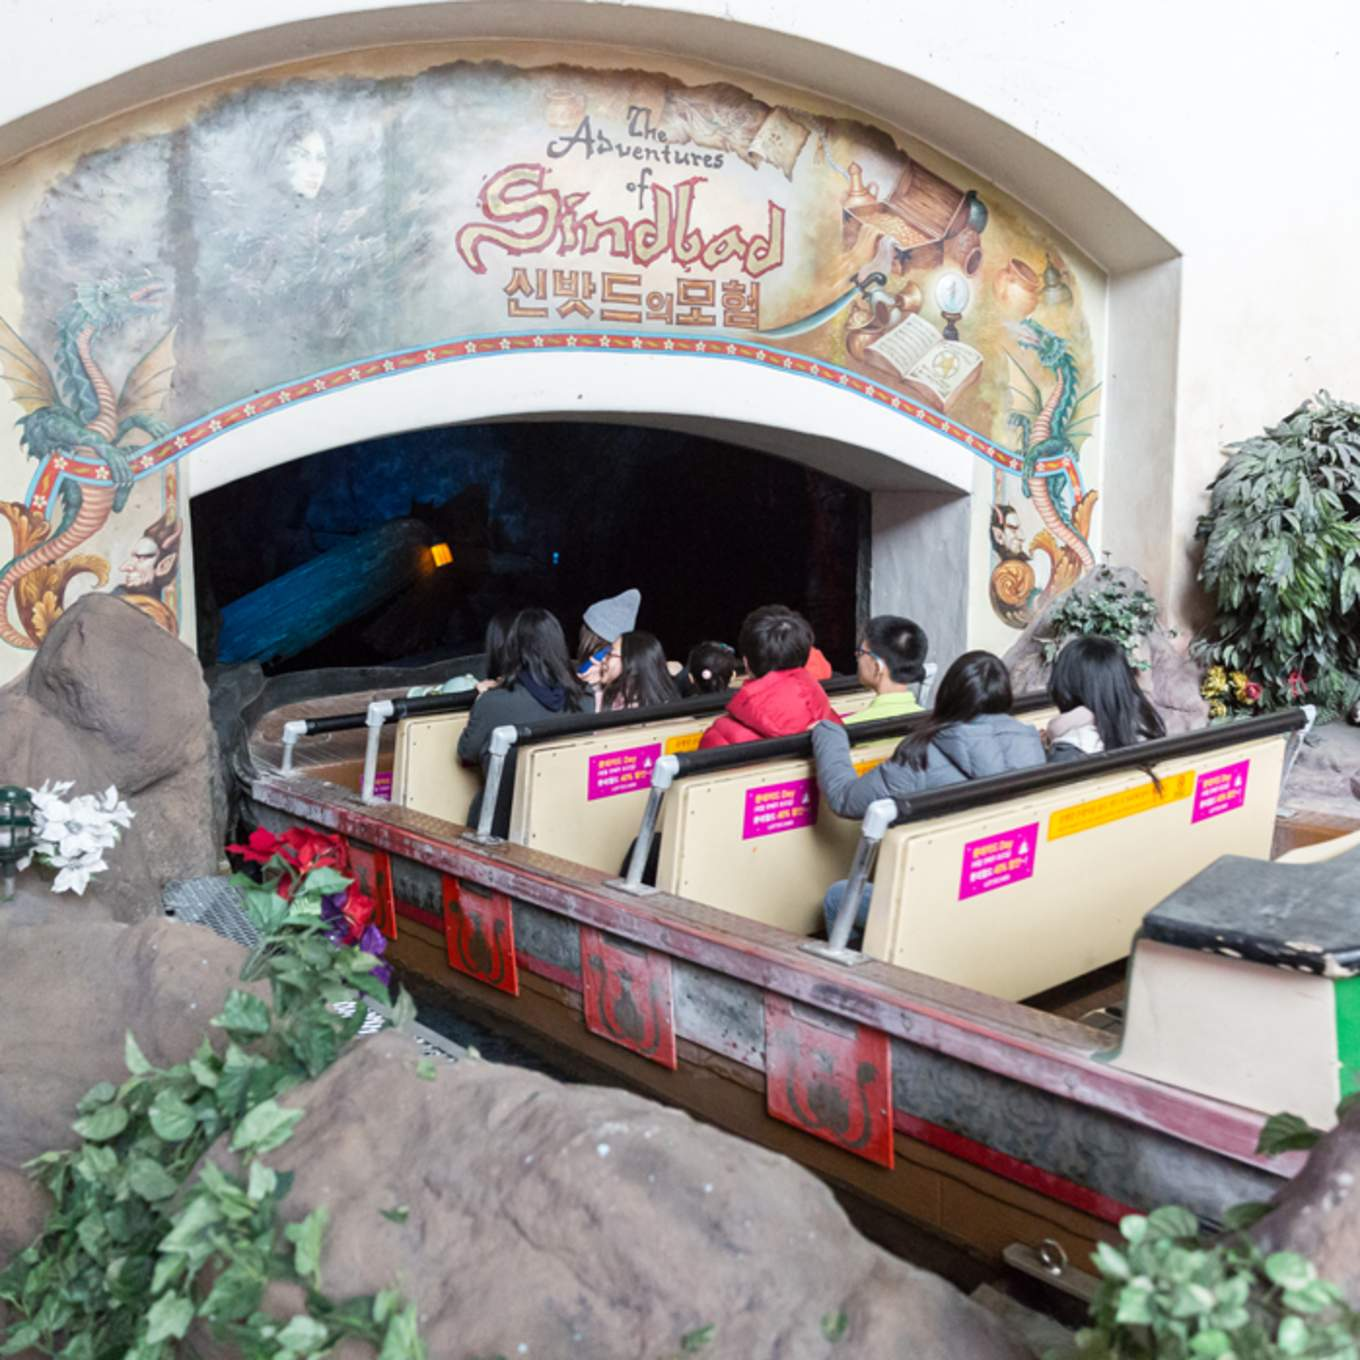 All-You-Need-To-Know-To-Conquer-Lotte-World-adventure-adventures-of-sinbad